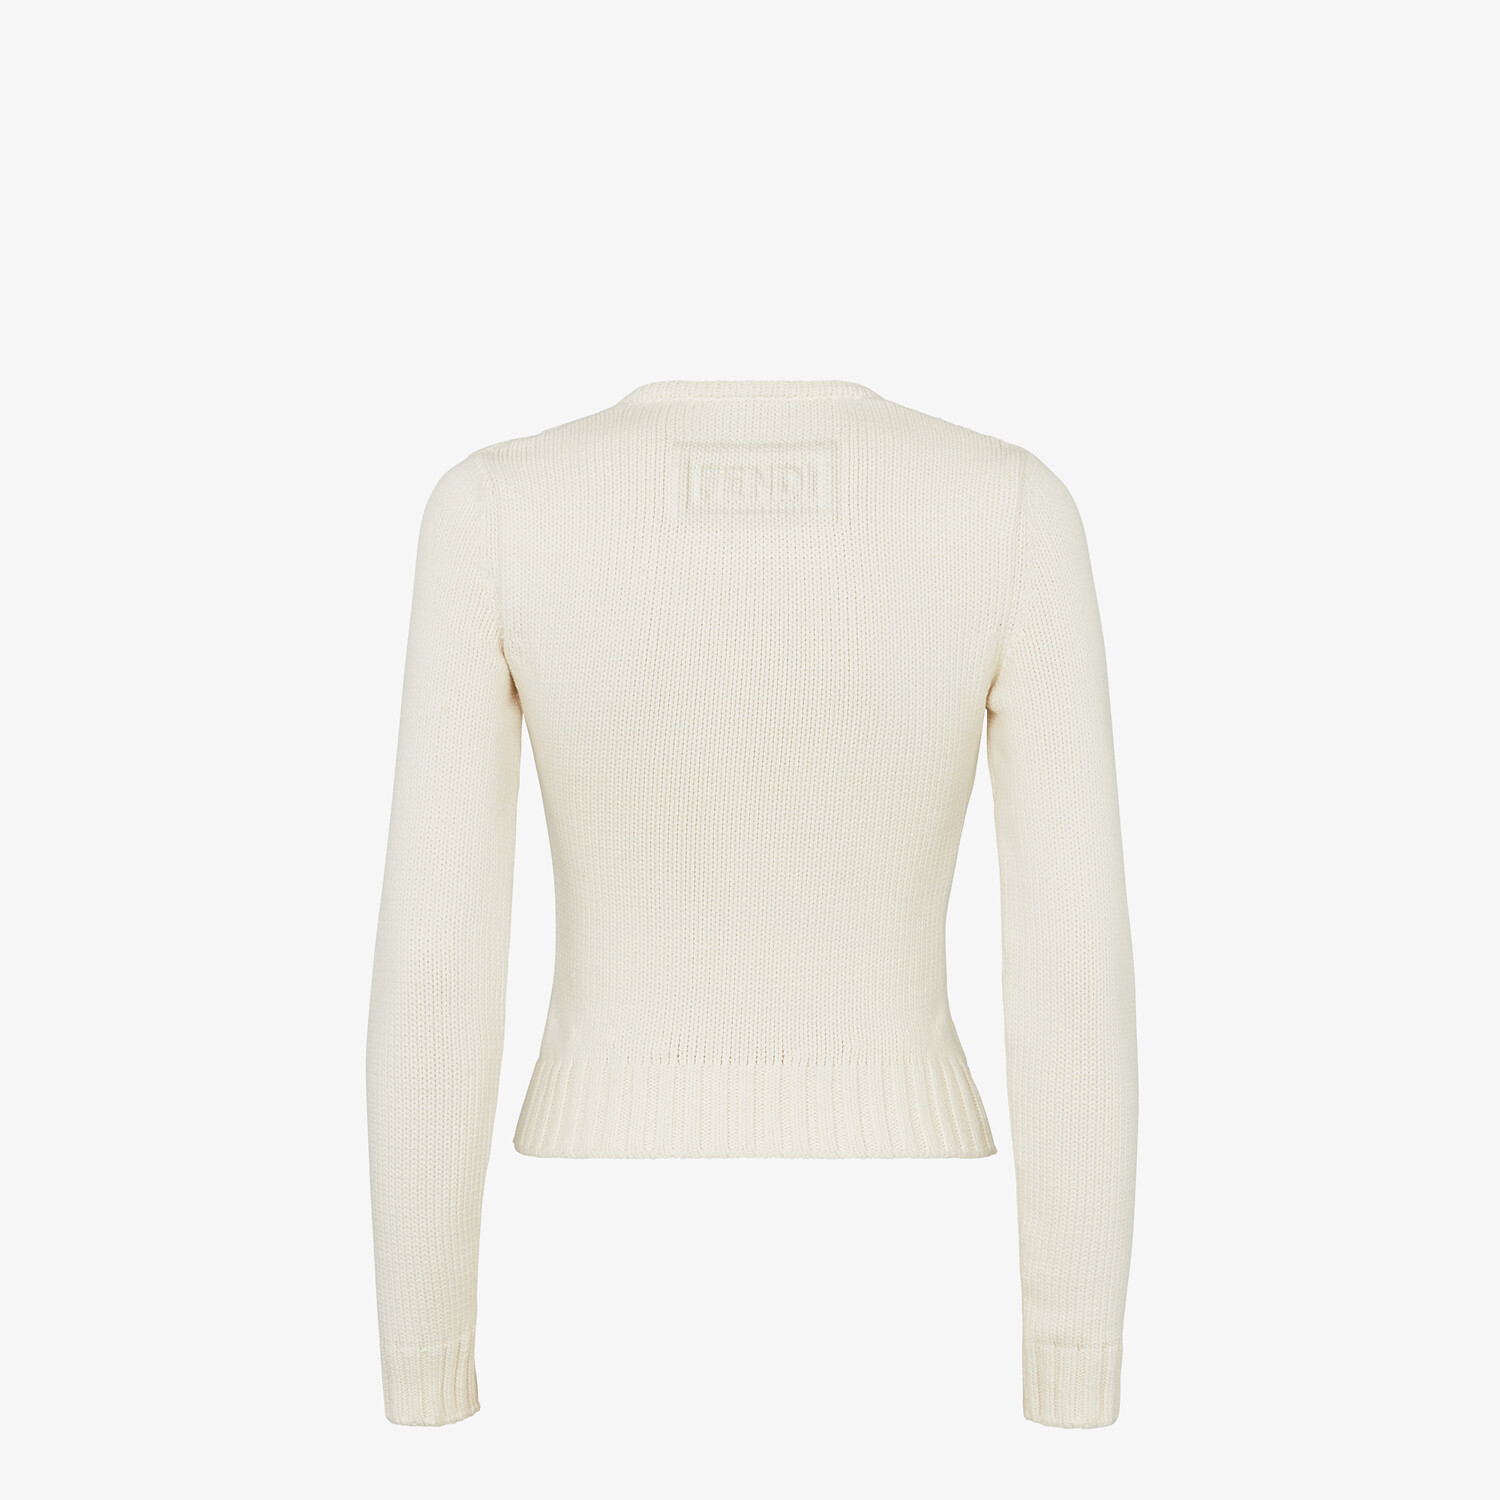 FENDI SWEATER - White cotton sweater - view 2 detail